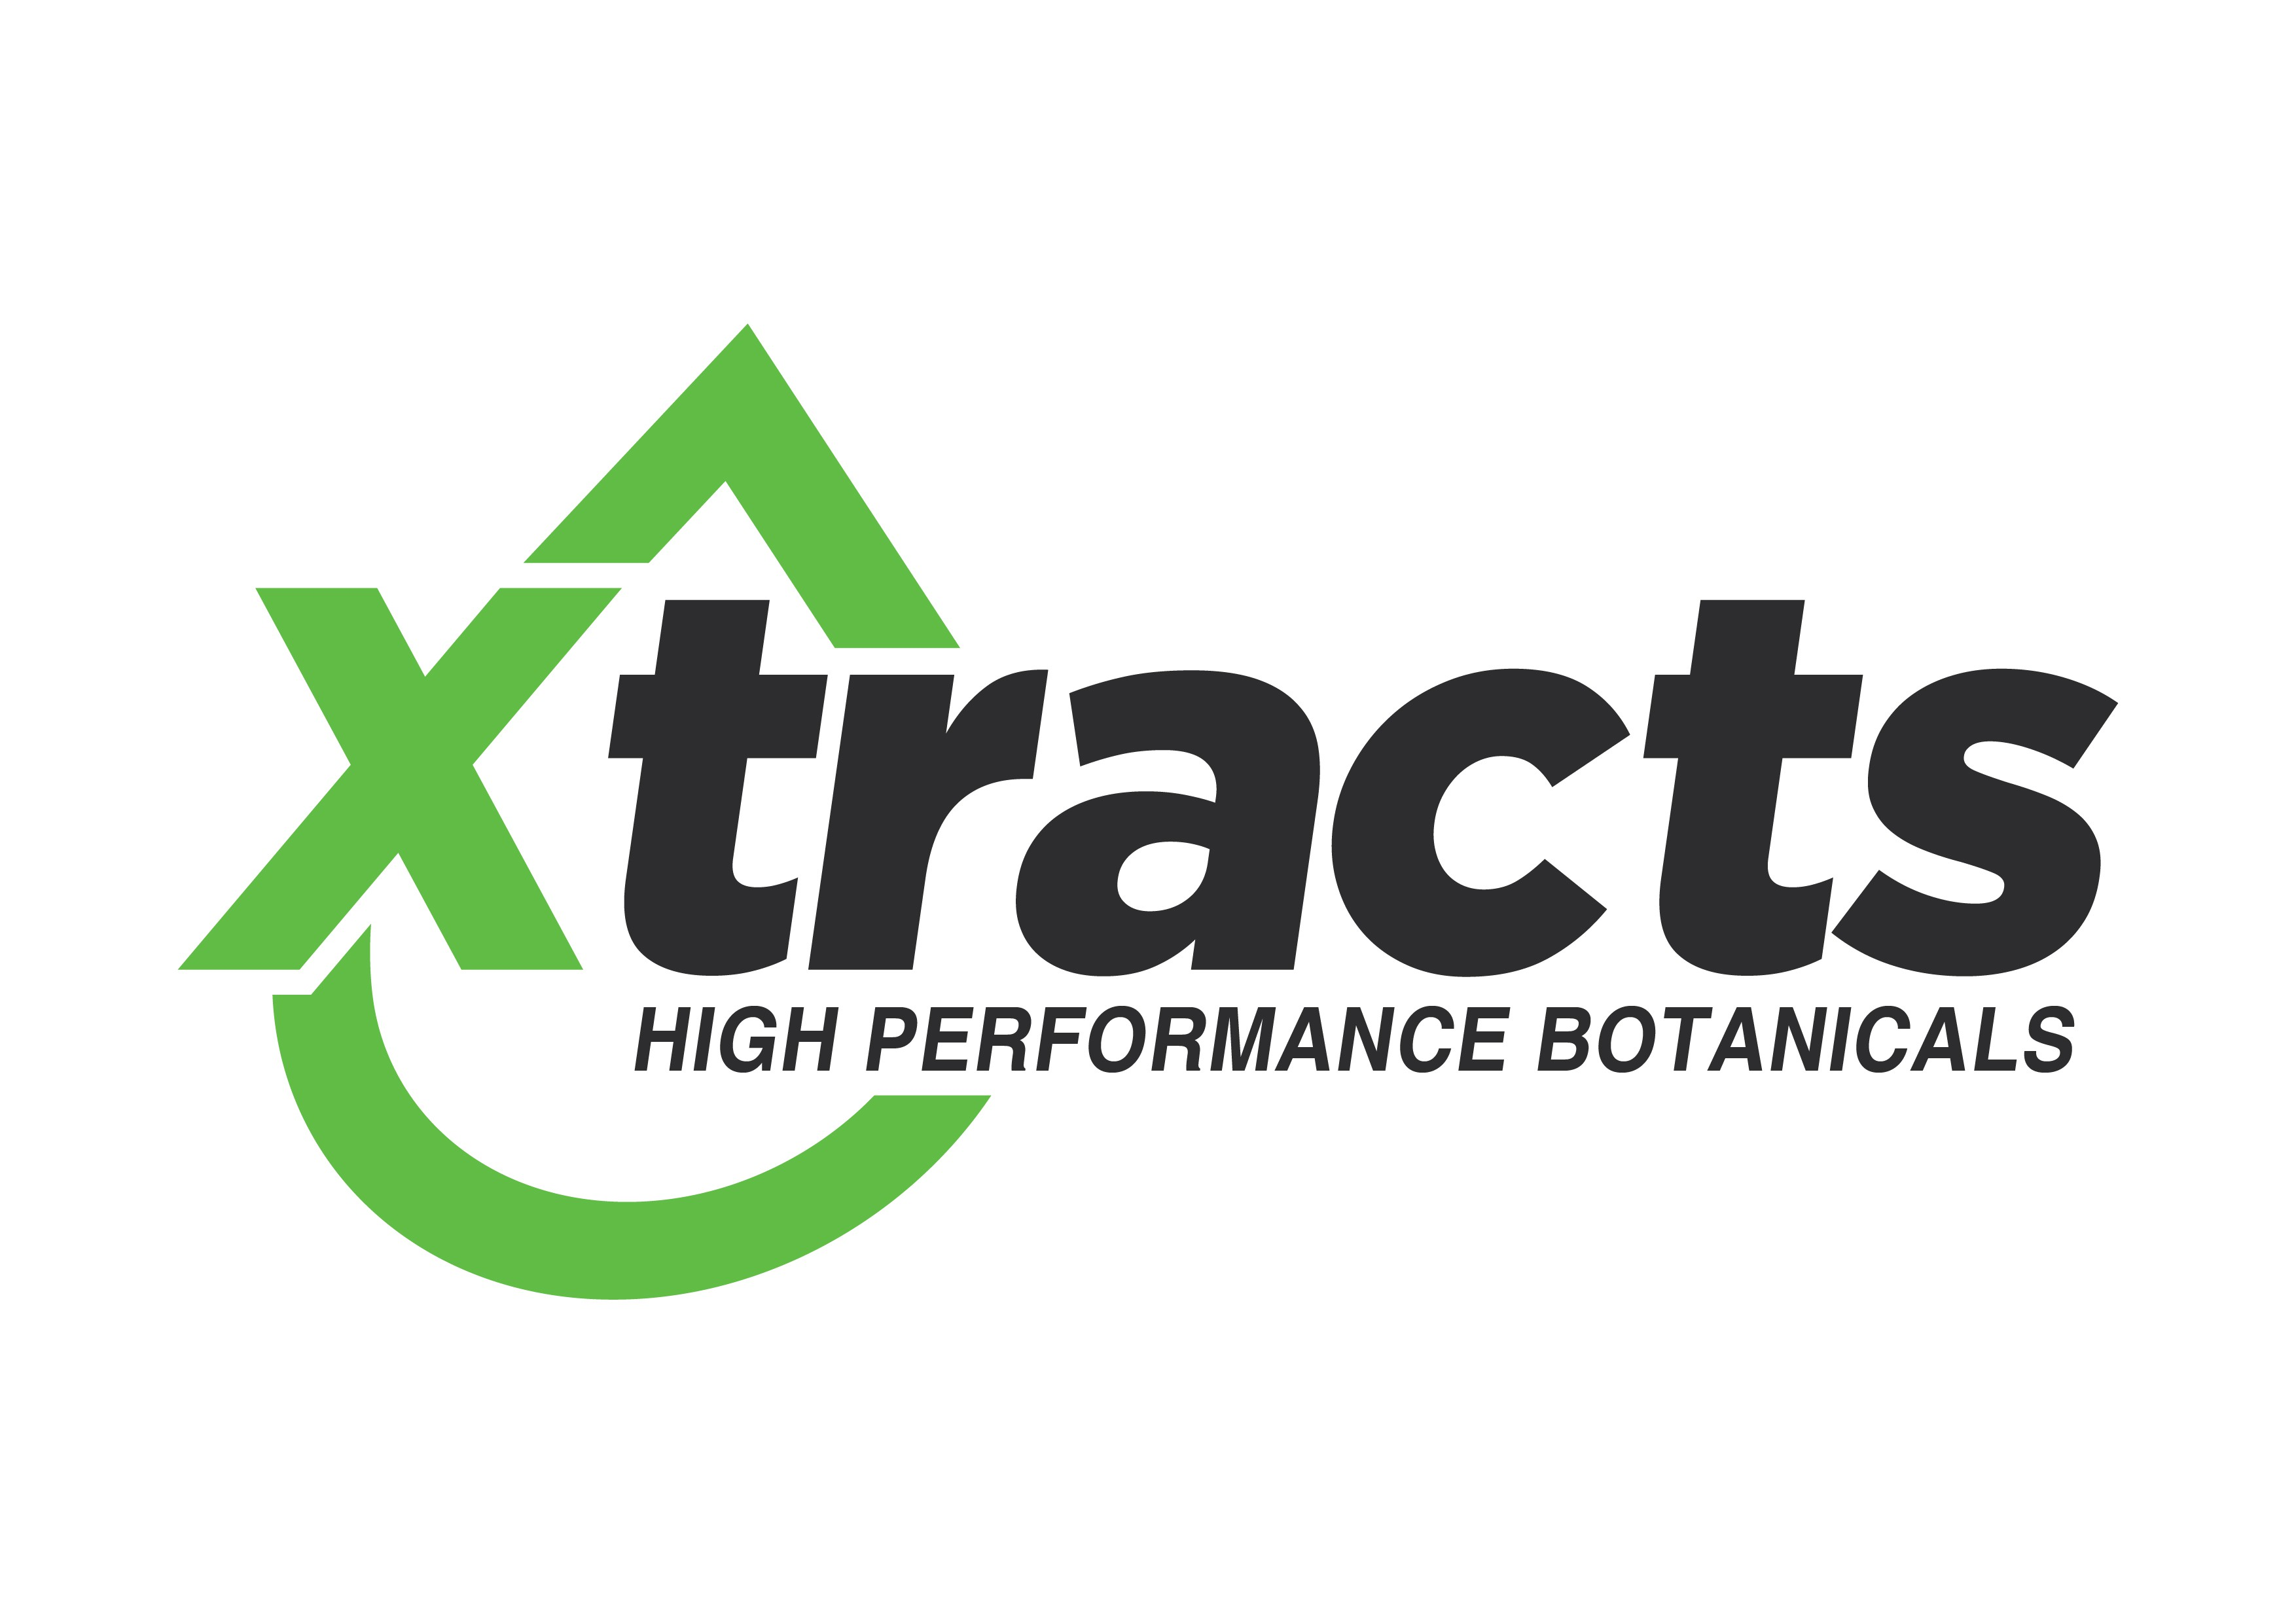 Xtracts CBD/THC extraction and processing company LOGO